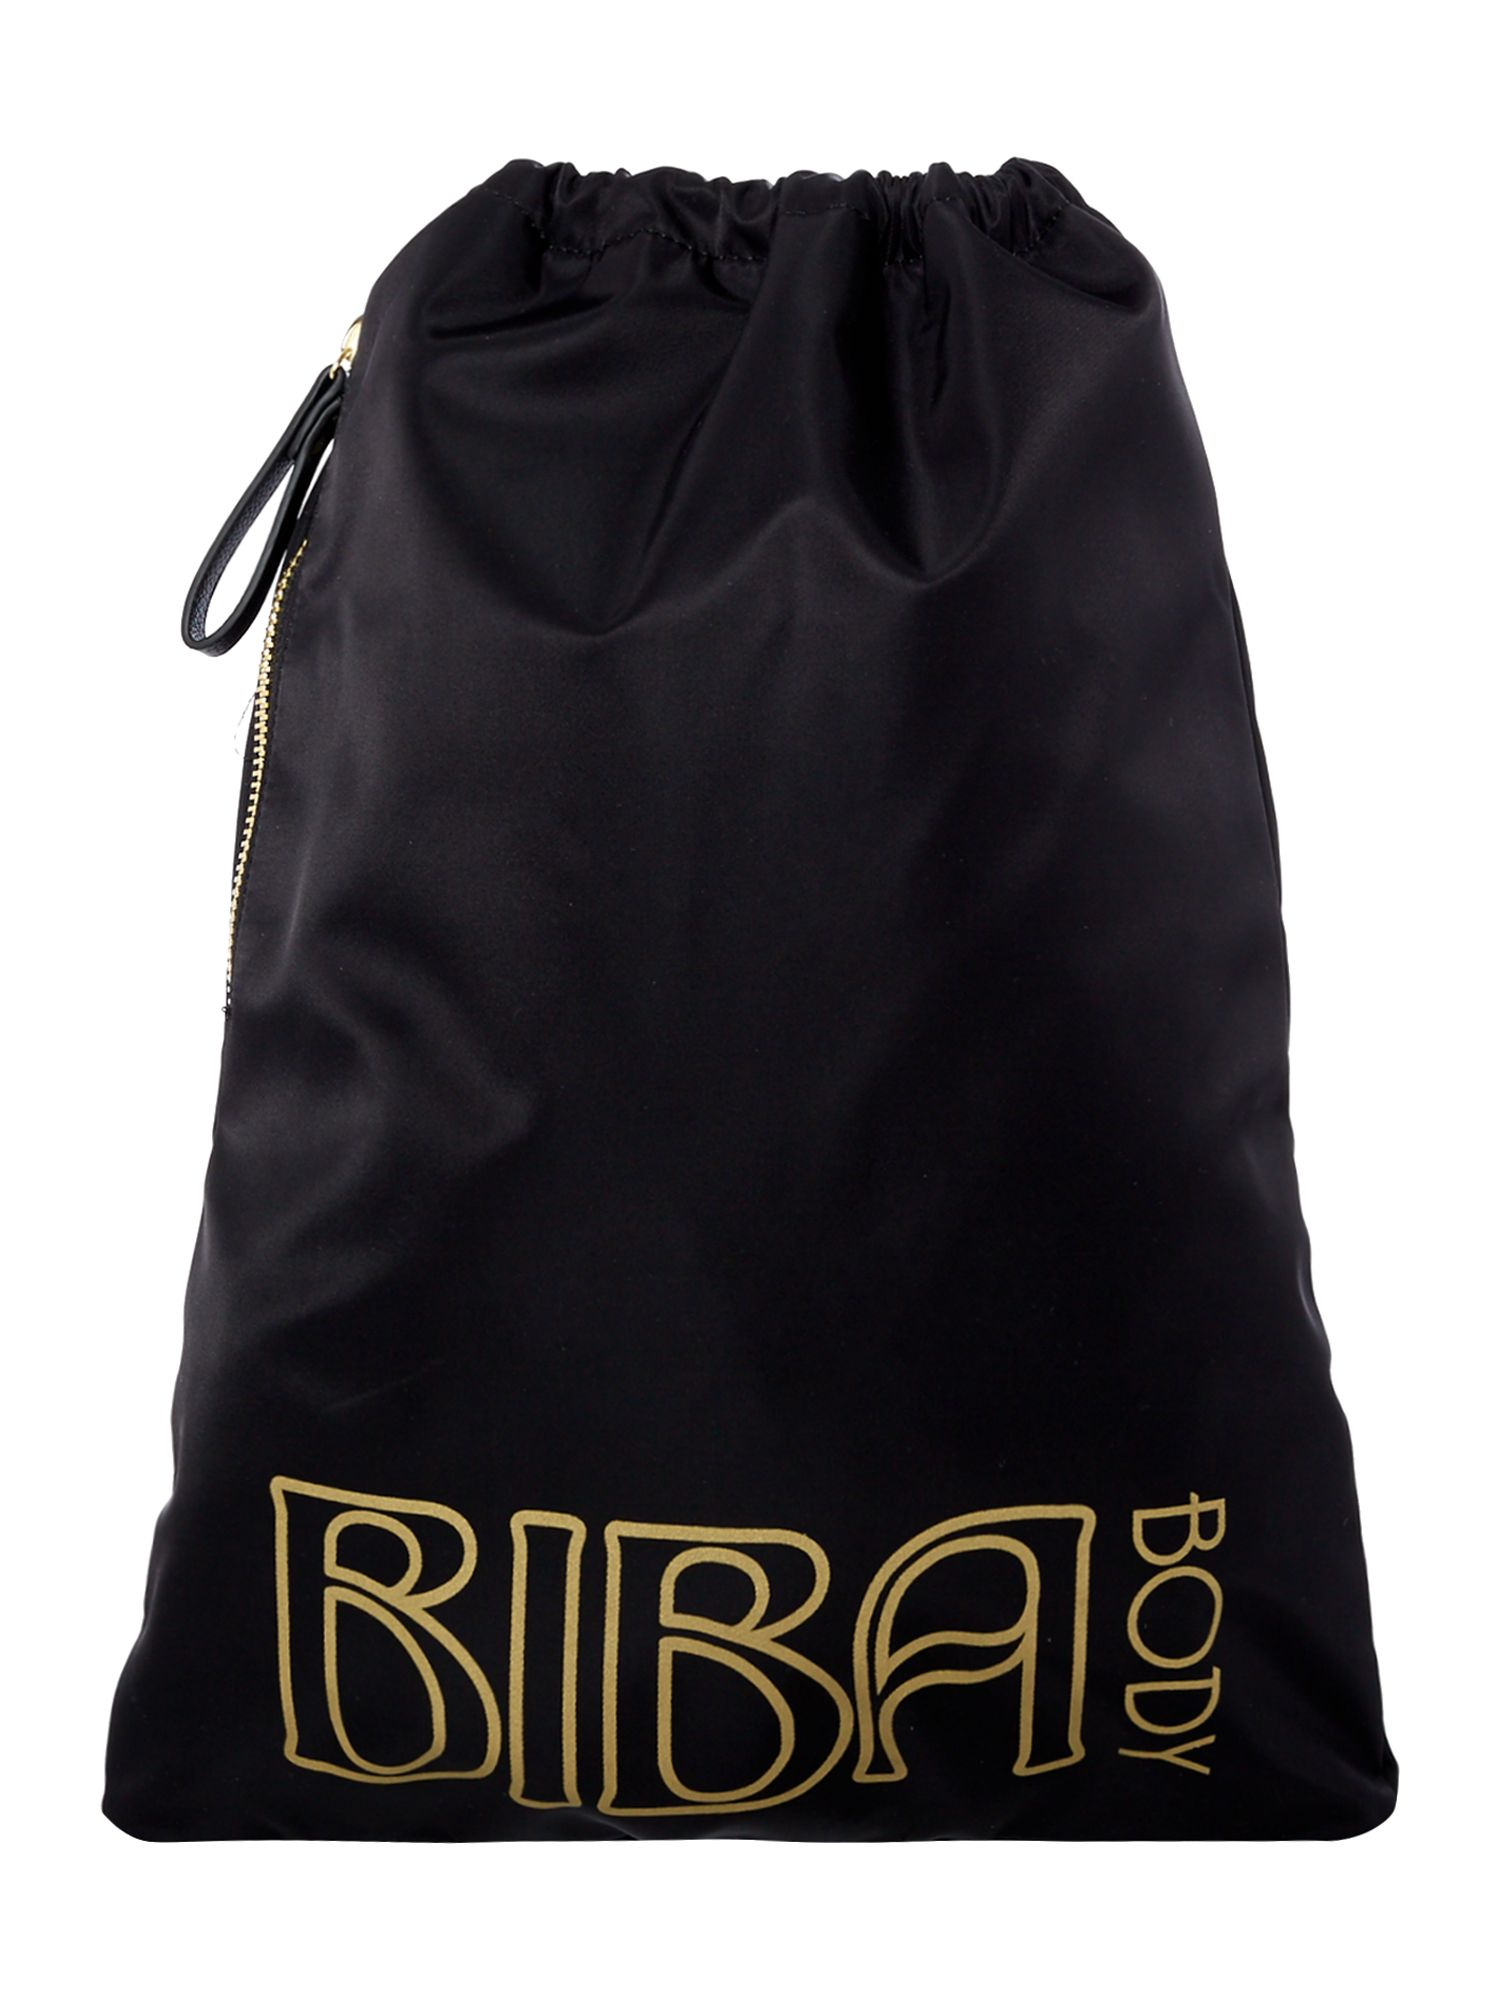 Biba Biba body drawstring bag, Black